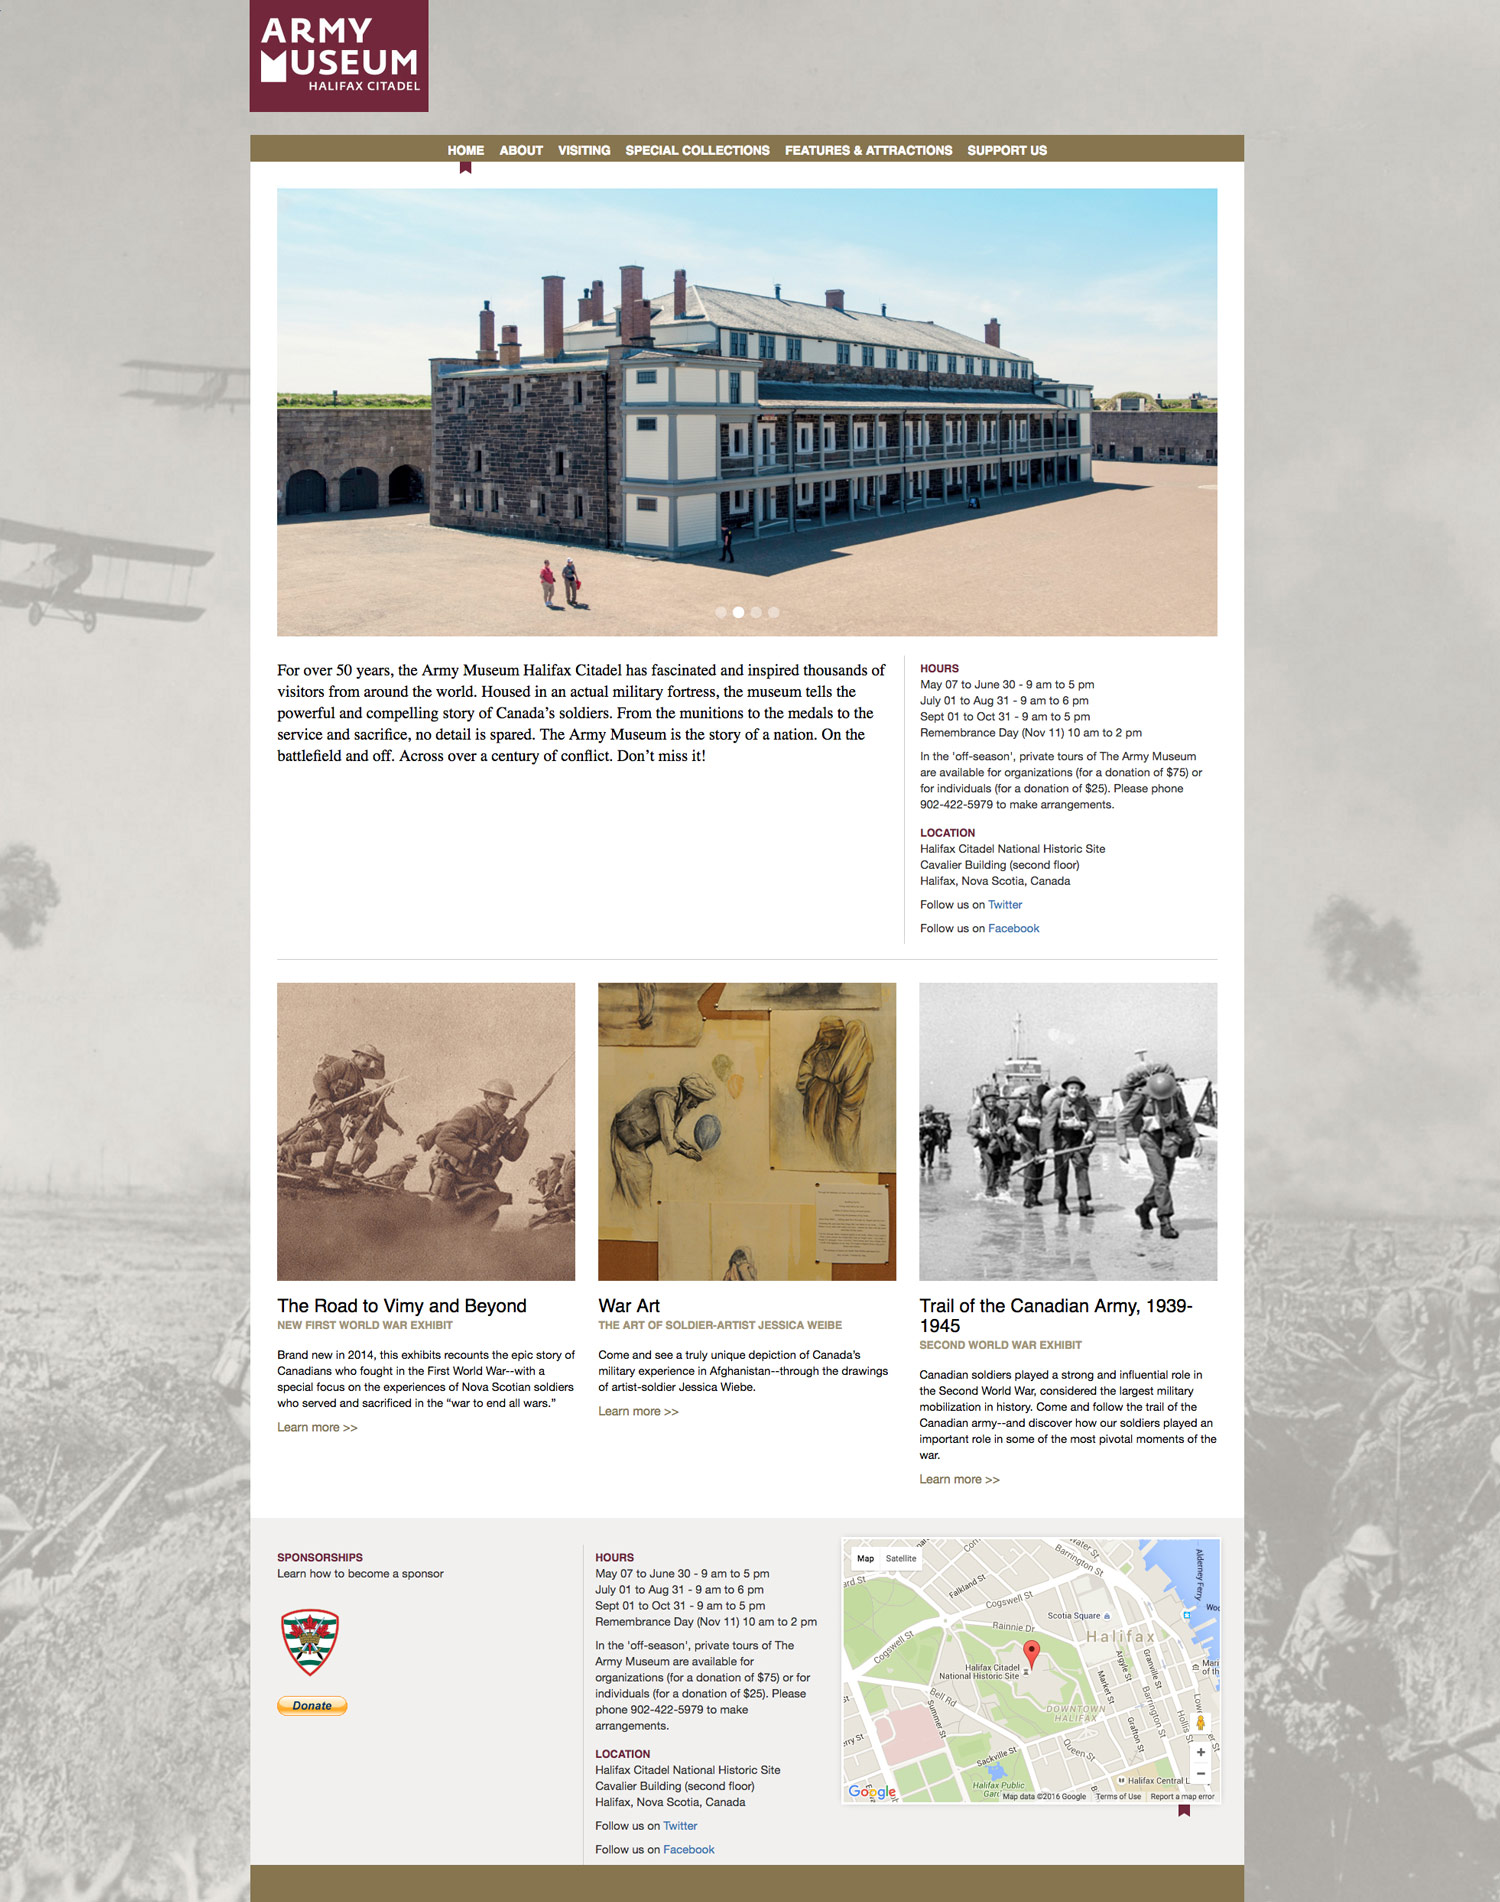 WEBSITE We worked with the Army Museum Halifax Citadel to develop, design, and deploy a new AMHC website.